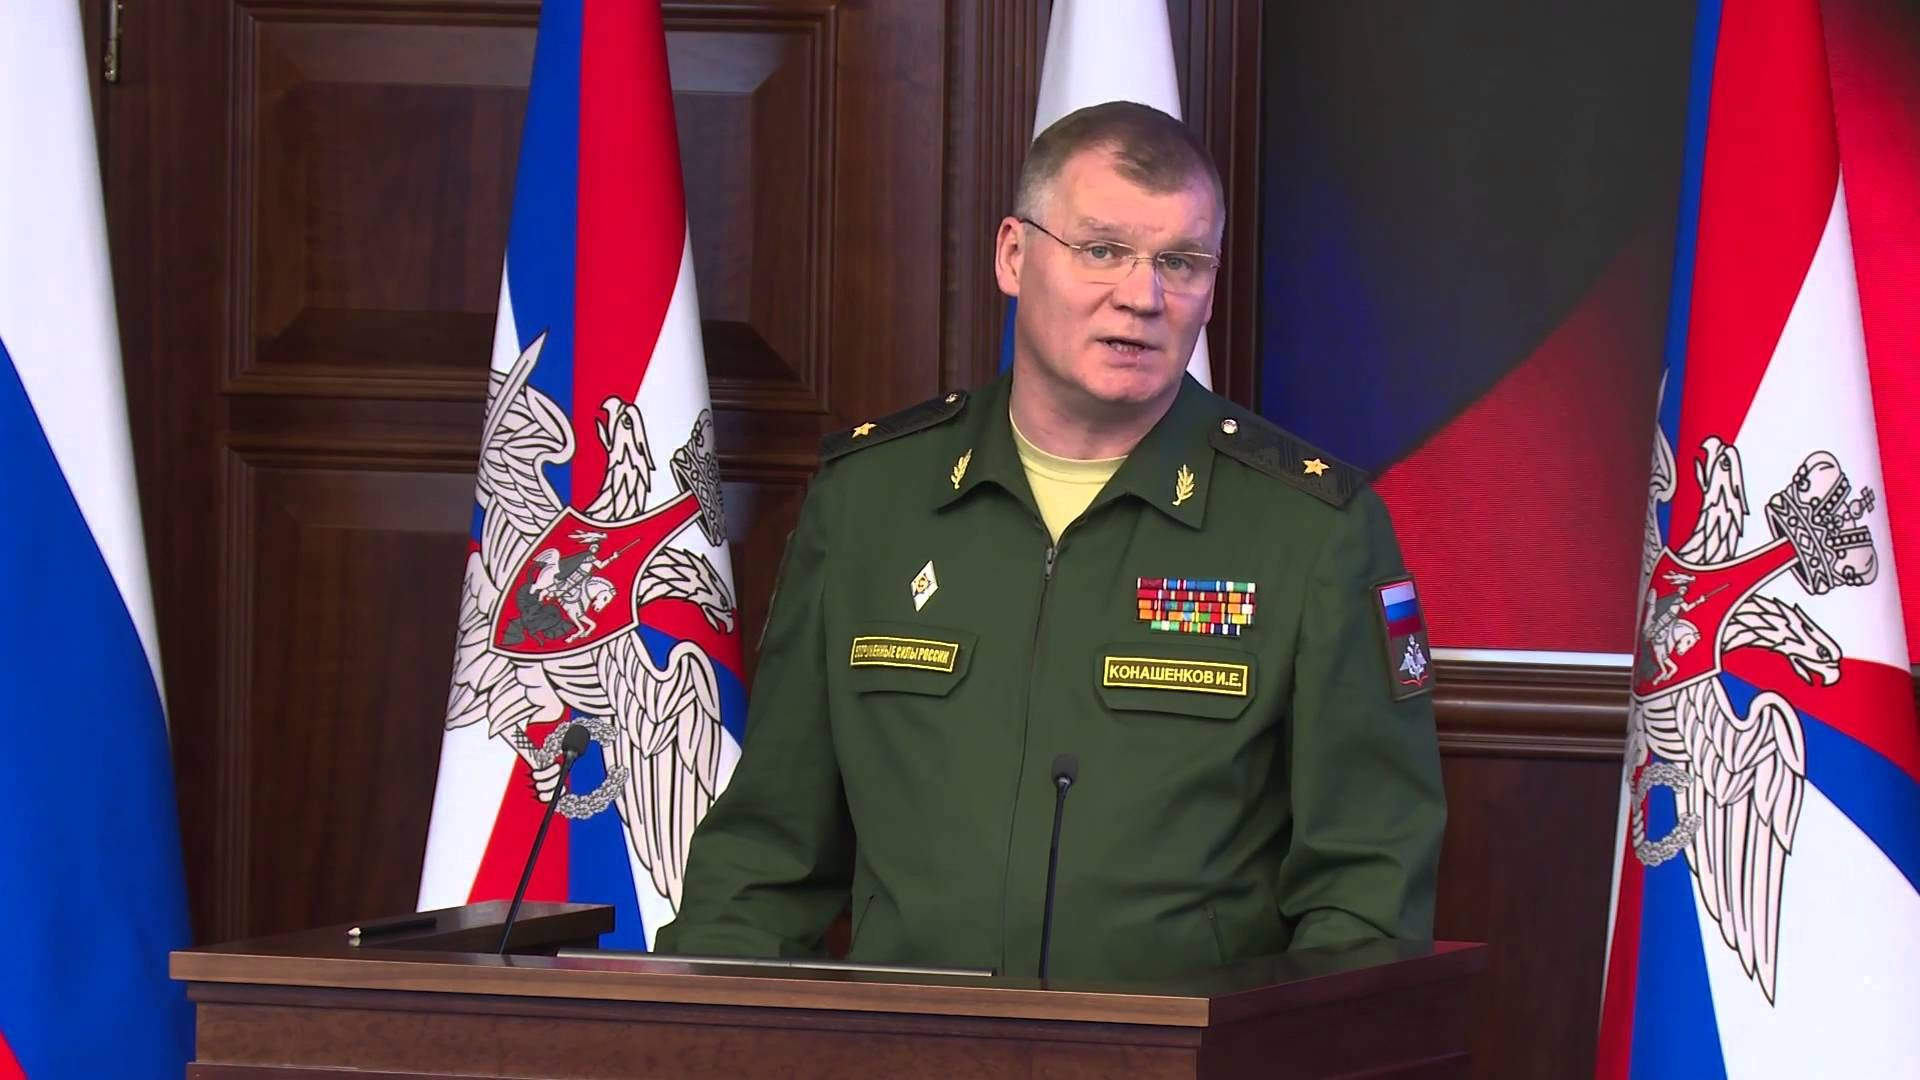 Syria Ceasefire 24 feb 2016 Russian Armed Forces General